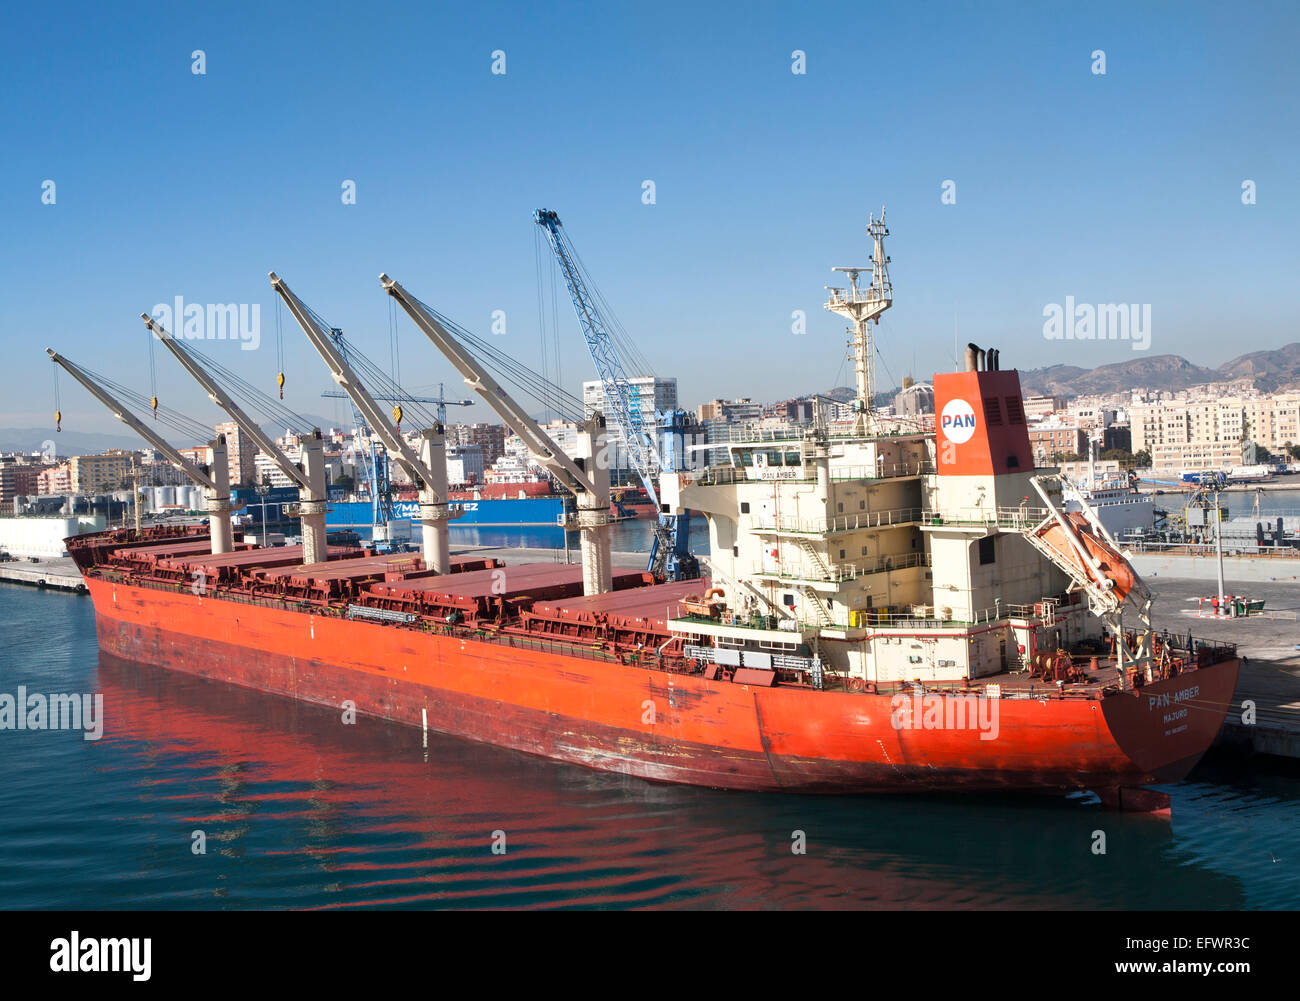 Cargo ship bulk carrier in the port of Malaga, Spain - Stock Image